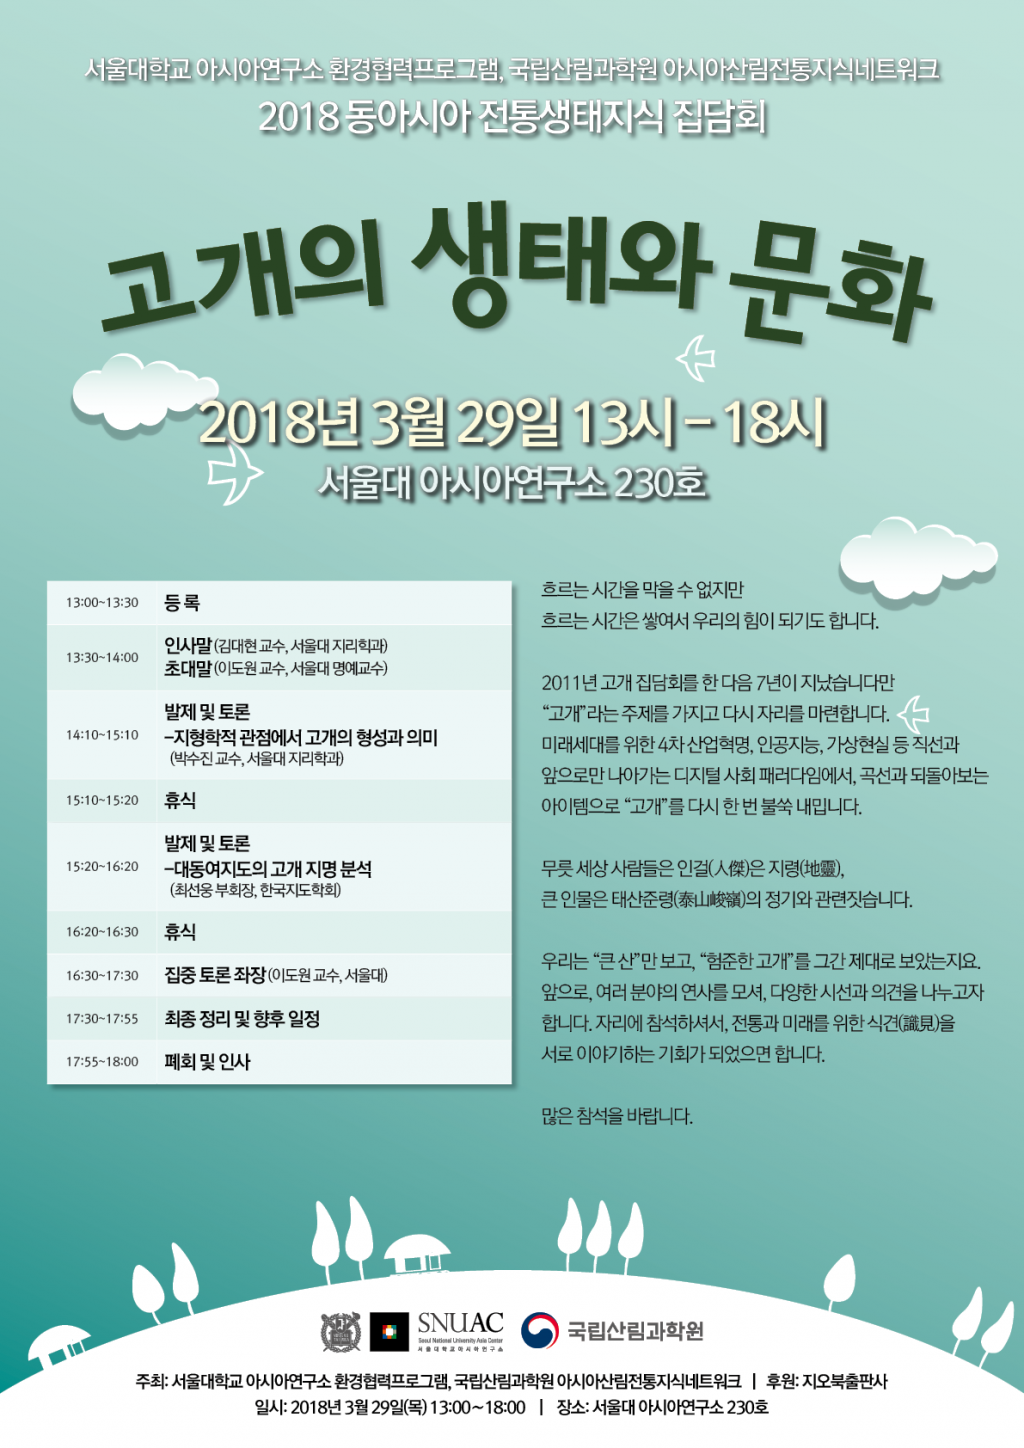 Conference for Culture and Ecosystem in Mountain Pass